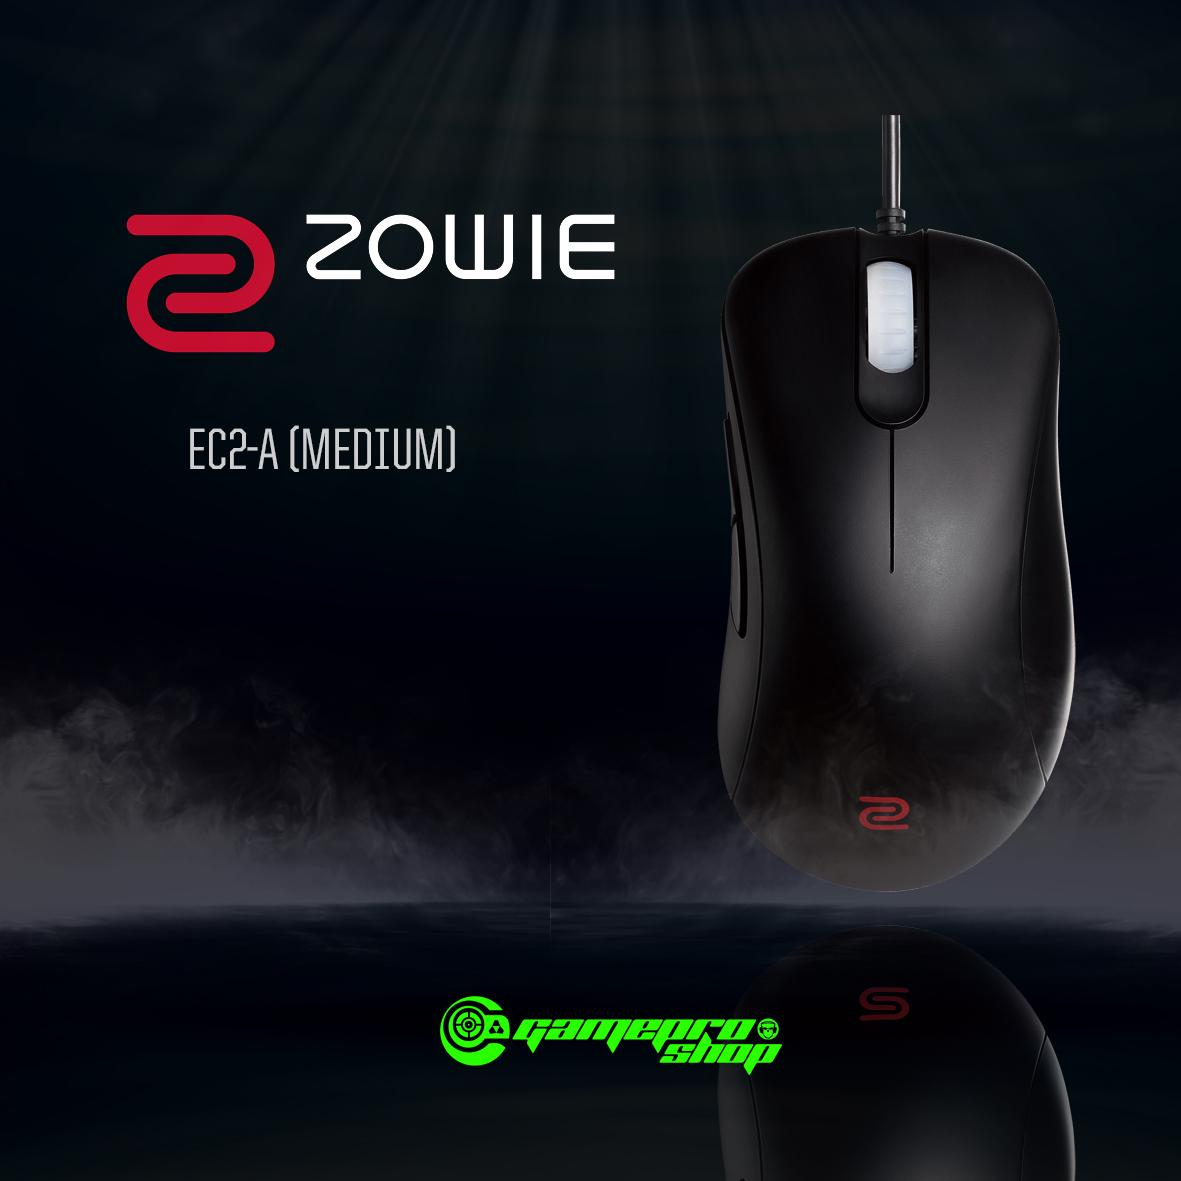 c940f8a0bb4 BenQ ZOWIE EC2-A Esports Gaming Mouse (Medium) *HAPPY NEW YEAR PROMO*  Singapore